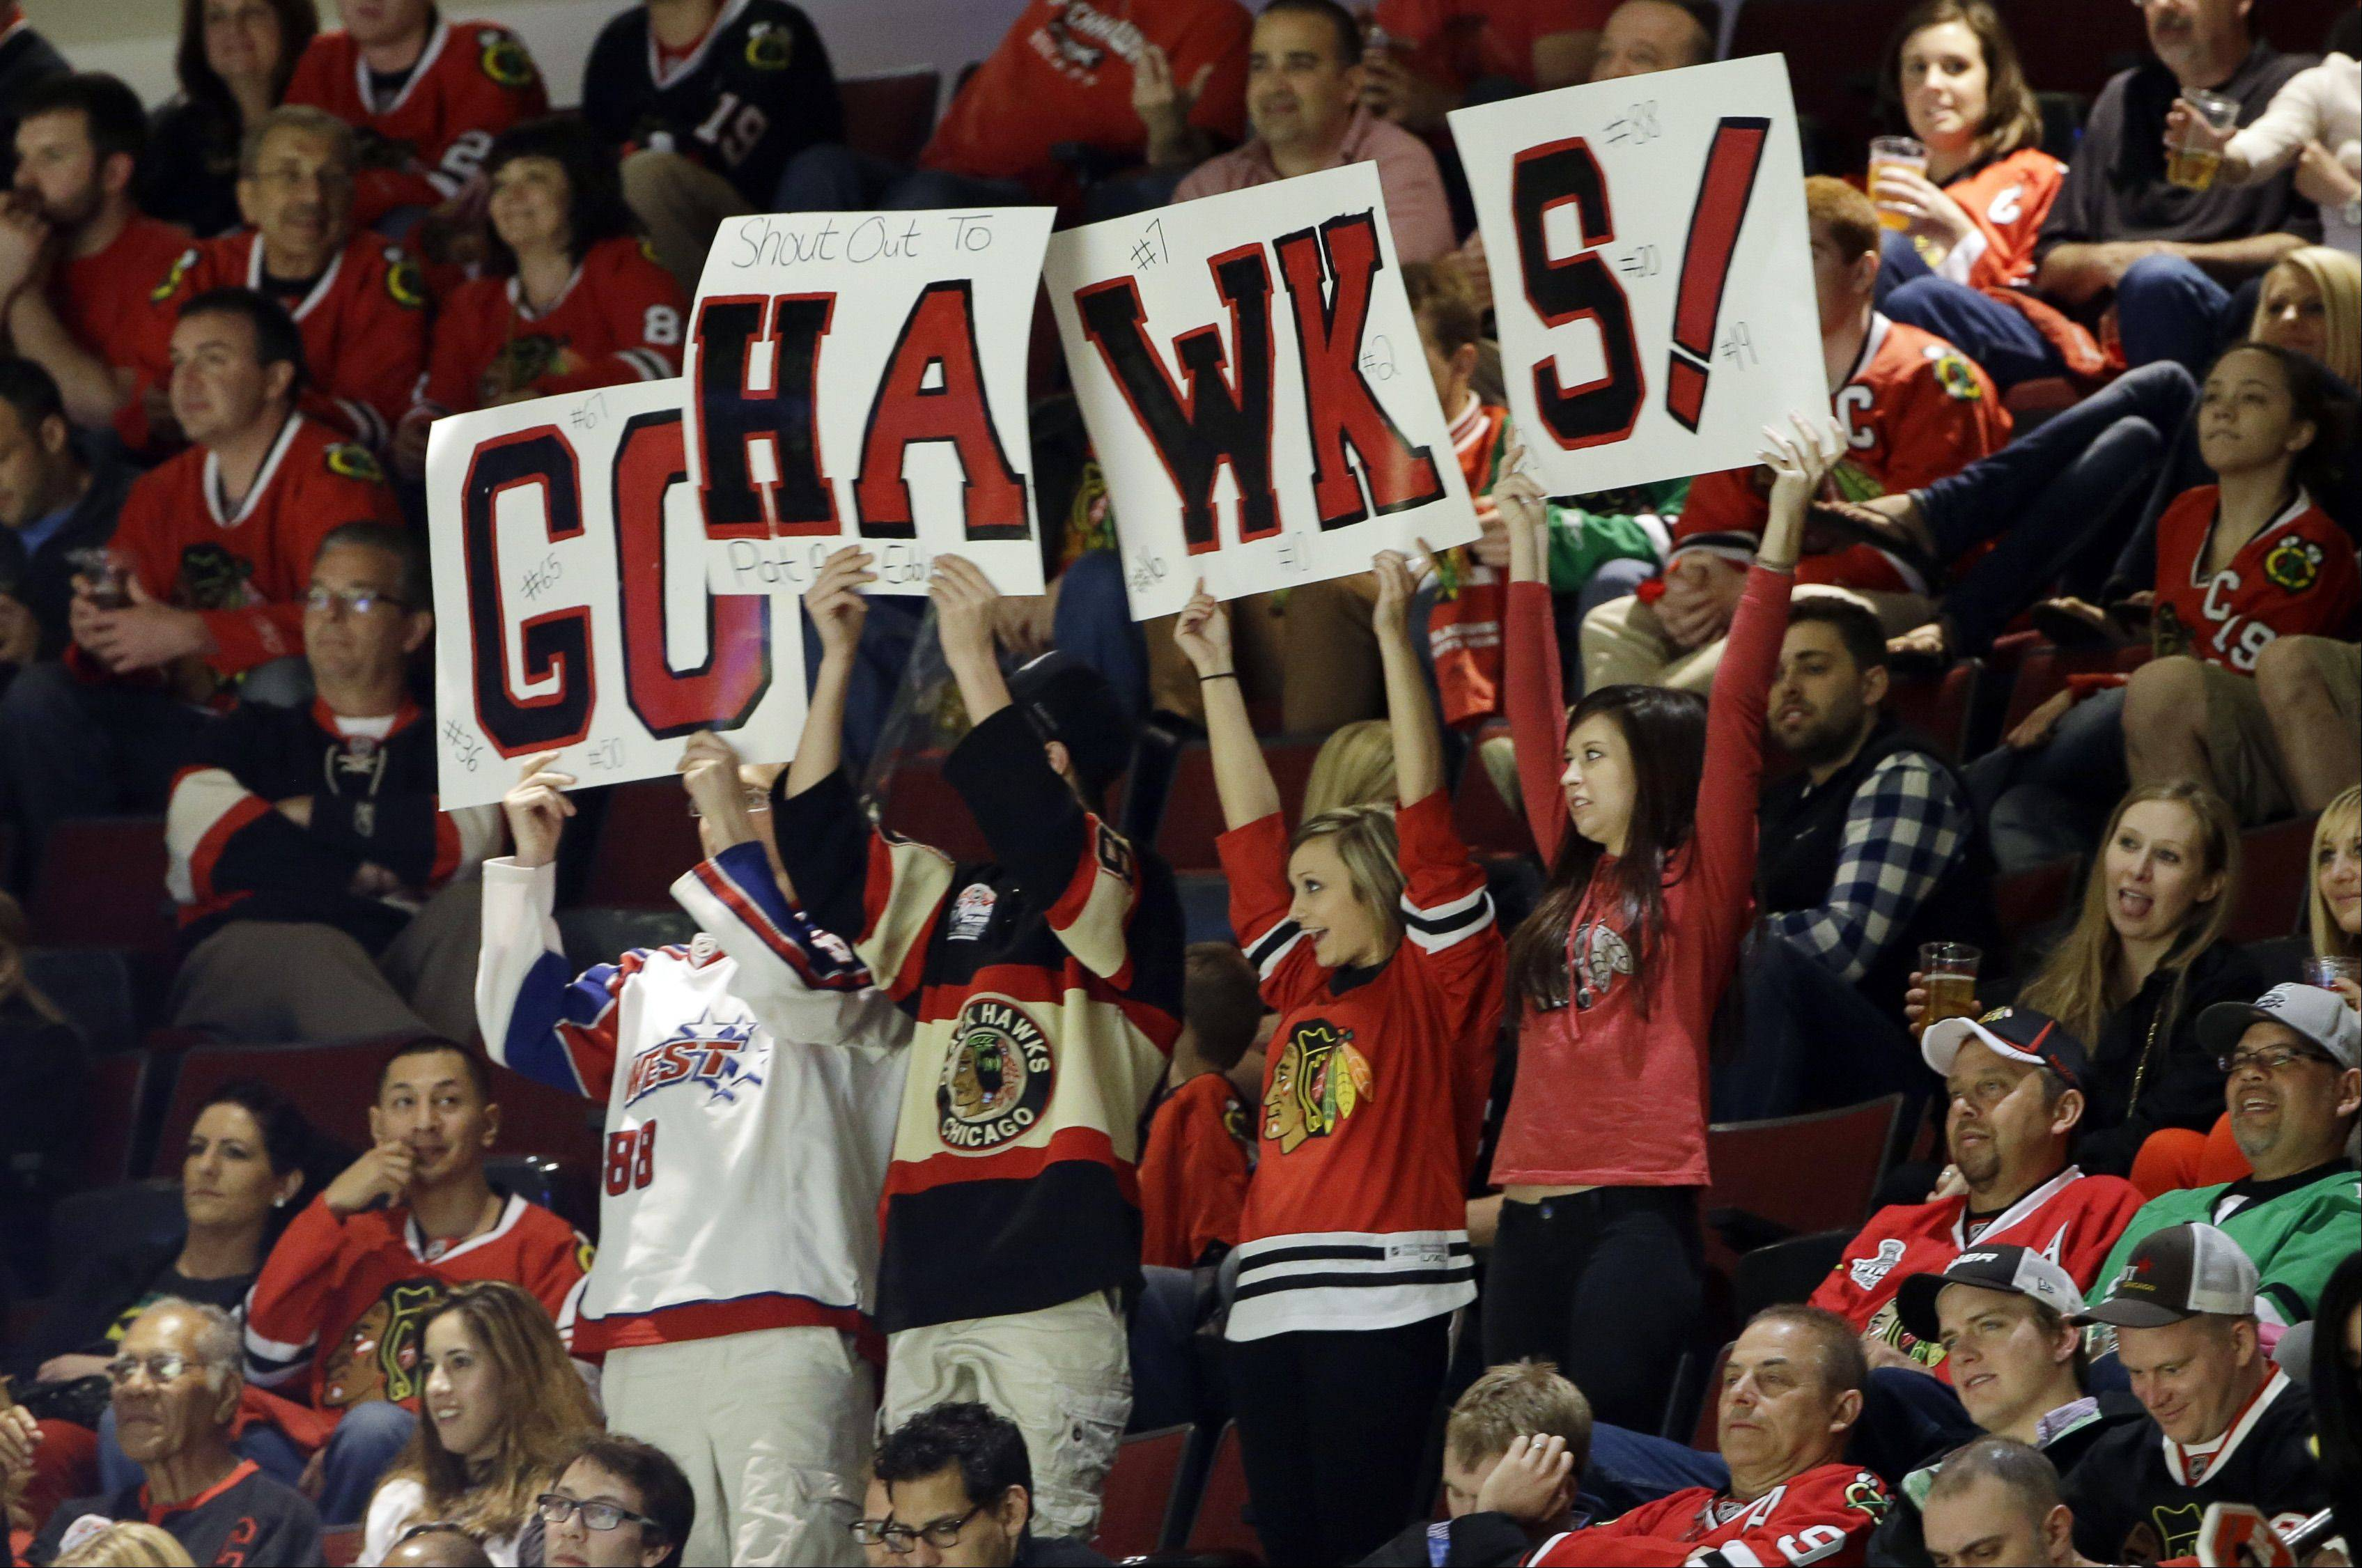 Chicago Blackhawks fans hold signs during the third period of Game 5 of an NHL hockey Stanley Cup first-round playoff series between the Minnesota Wild and the Chicago Blackhawks in Chicago, Thursday, May 9, 2013. The Blackhawks won 5-1.